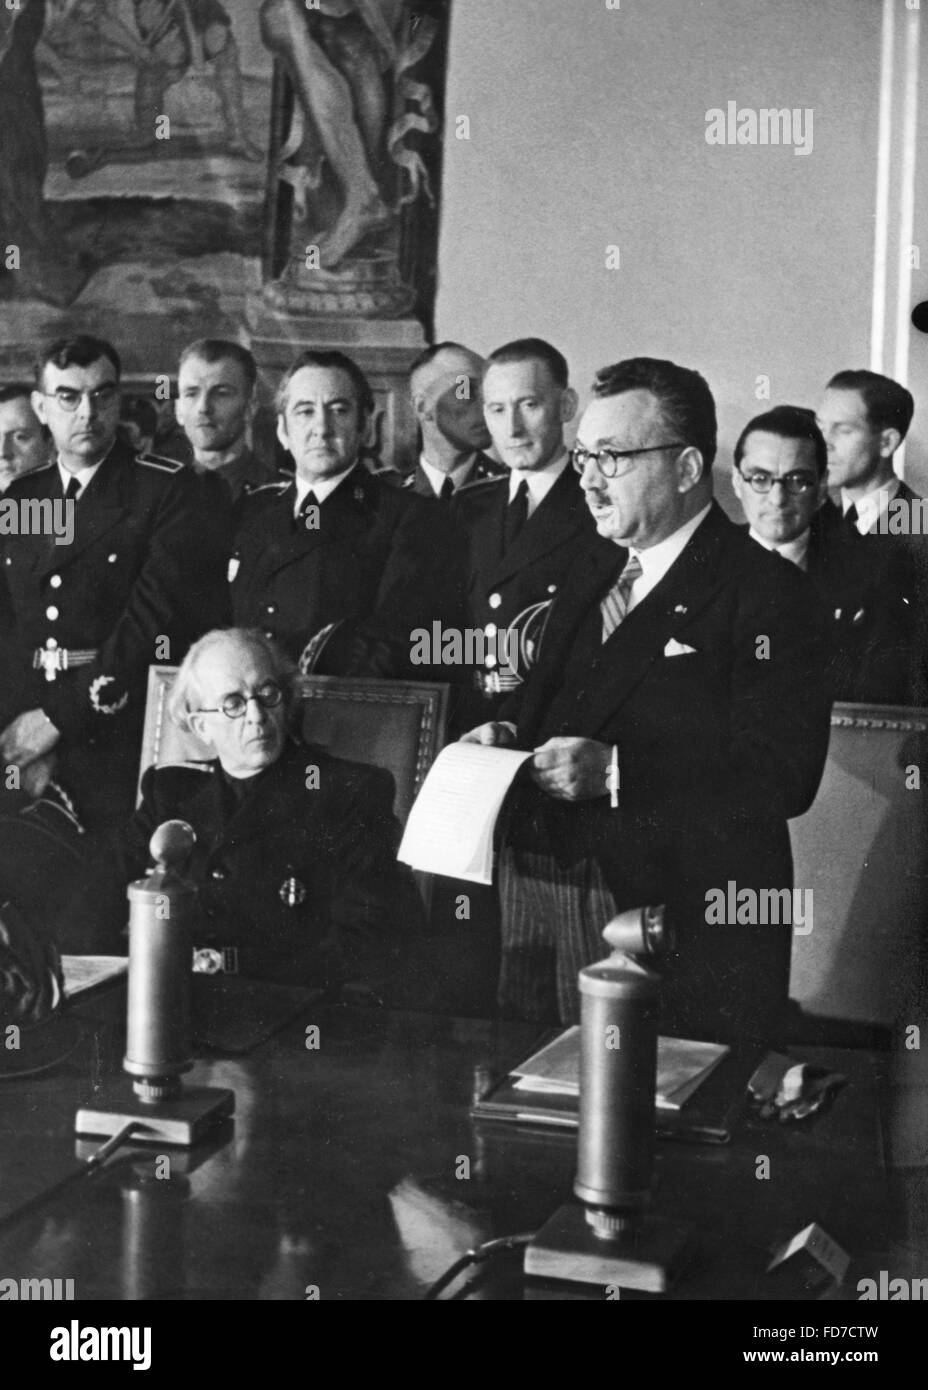 Tuka and Popov at the extension and expansion of the Anti-Comintern Pact, 25.11.1941 Stock Photo